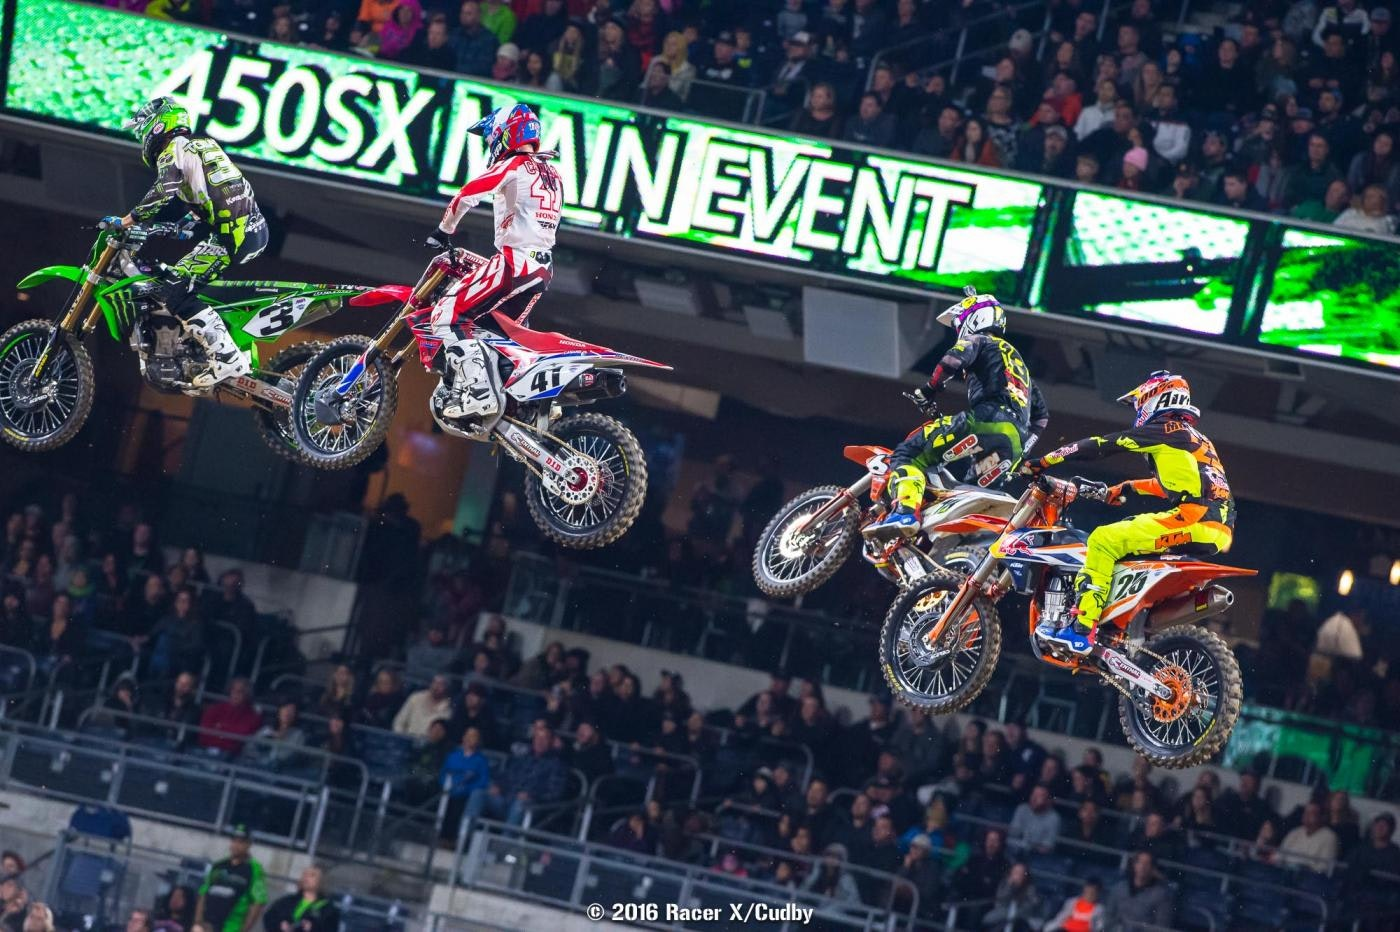 A lot of talent in this 450 field.